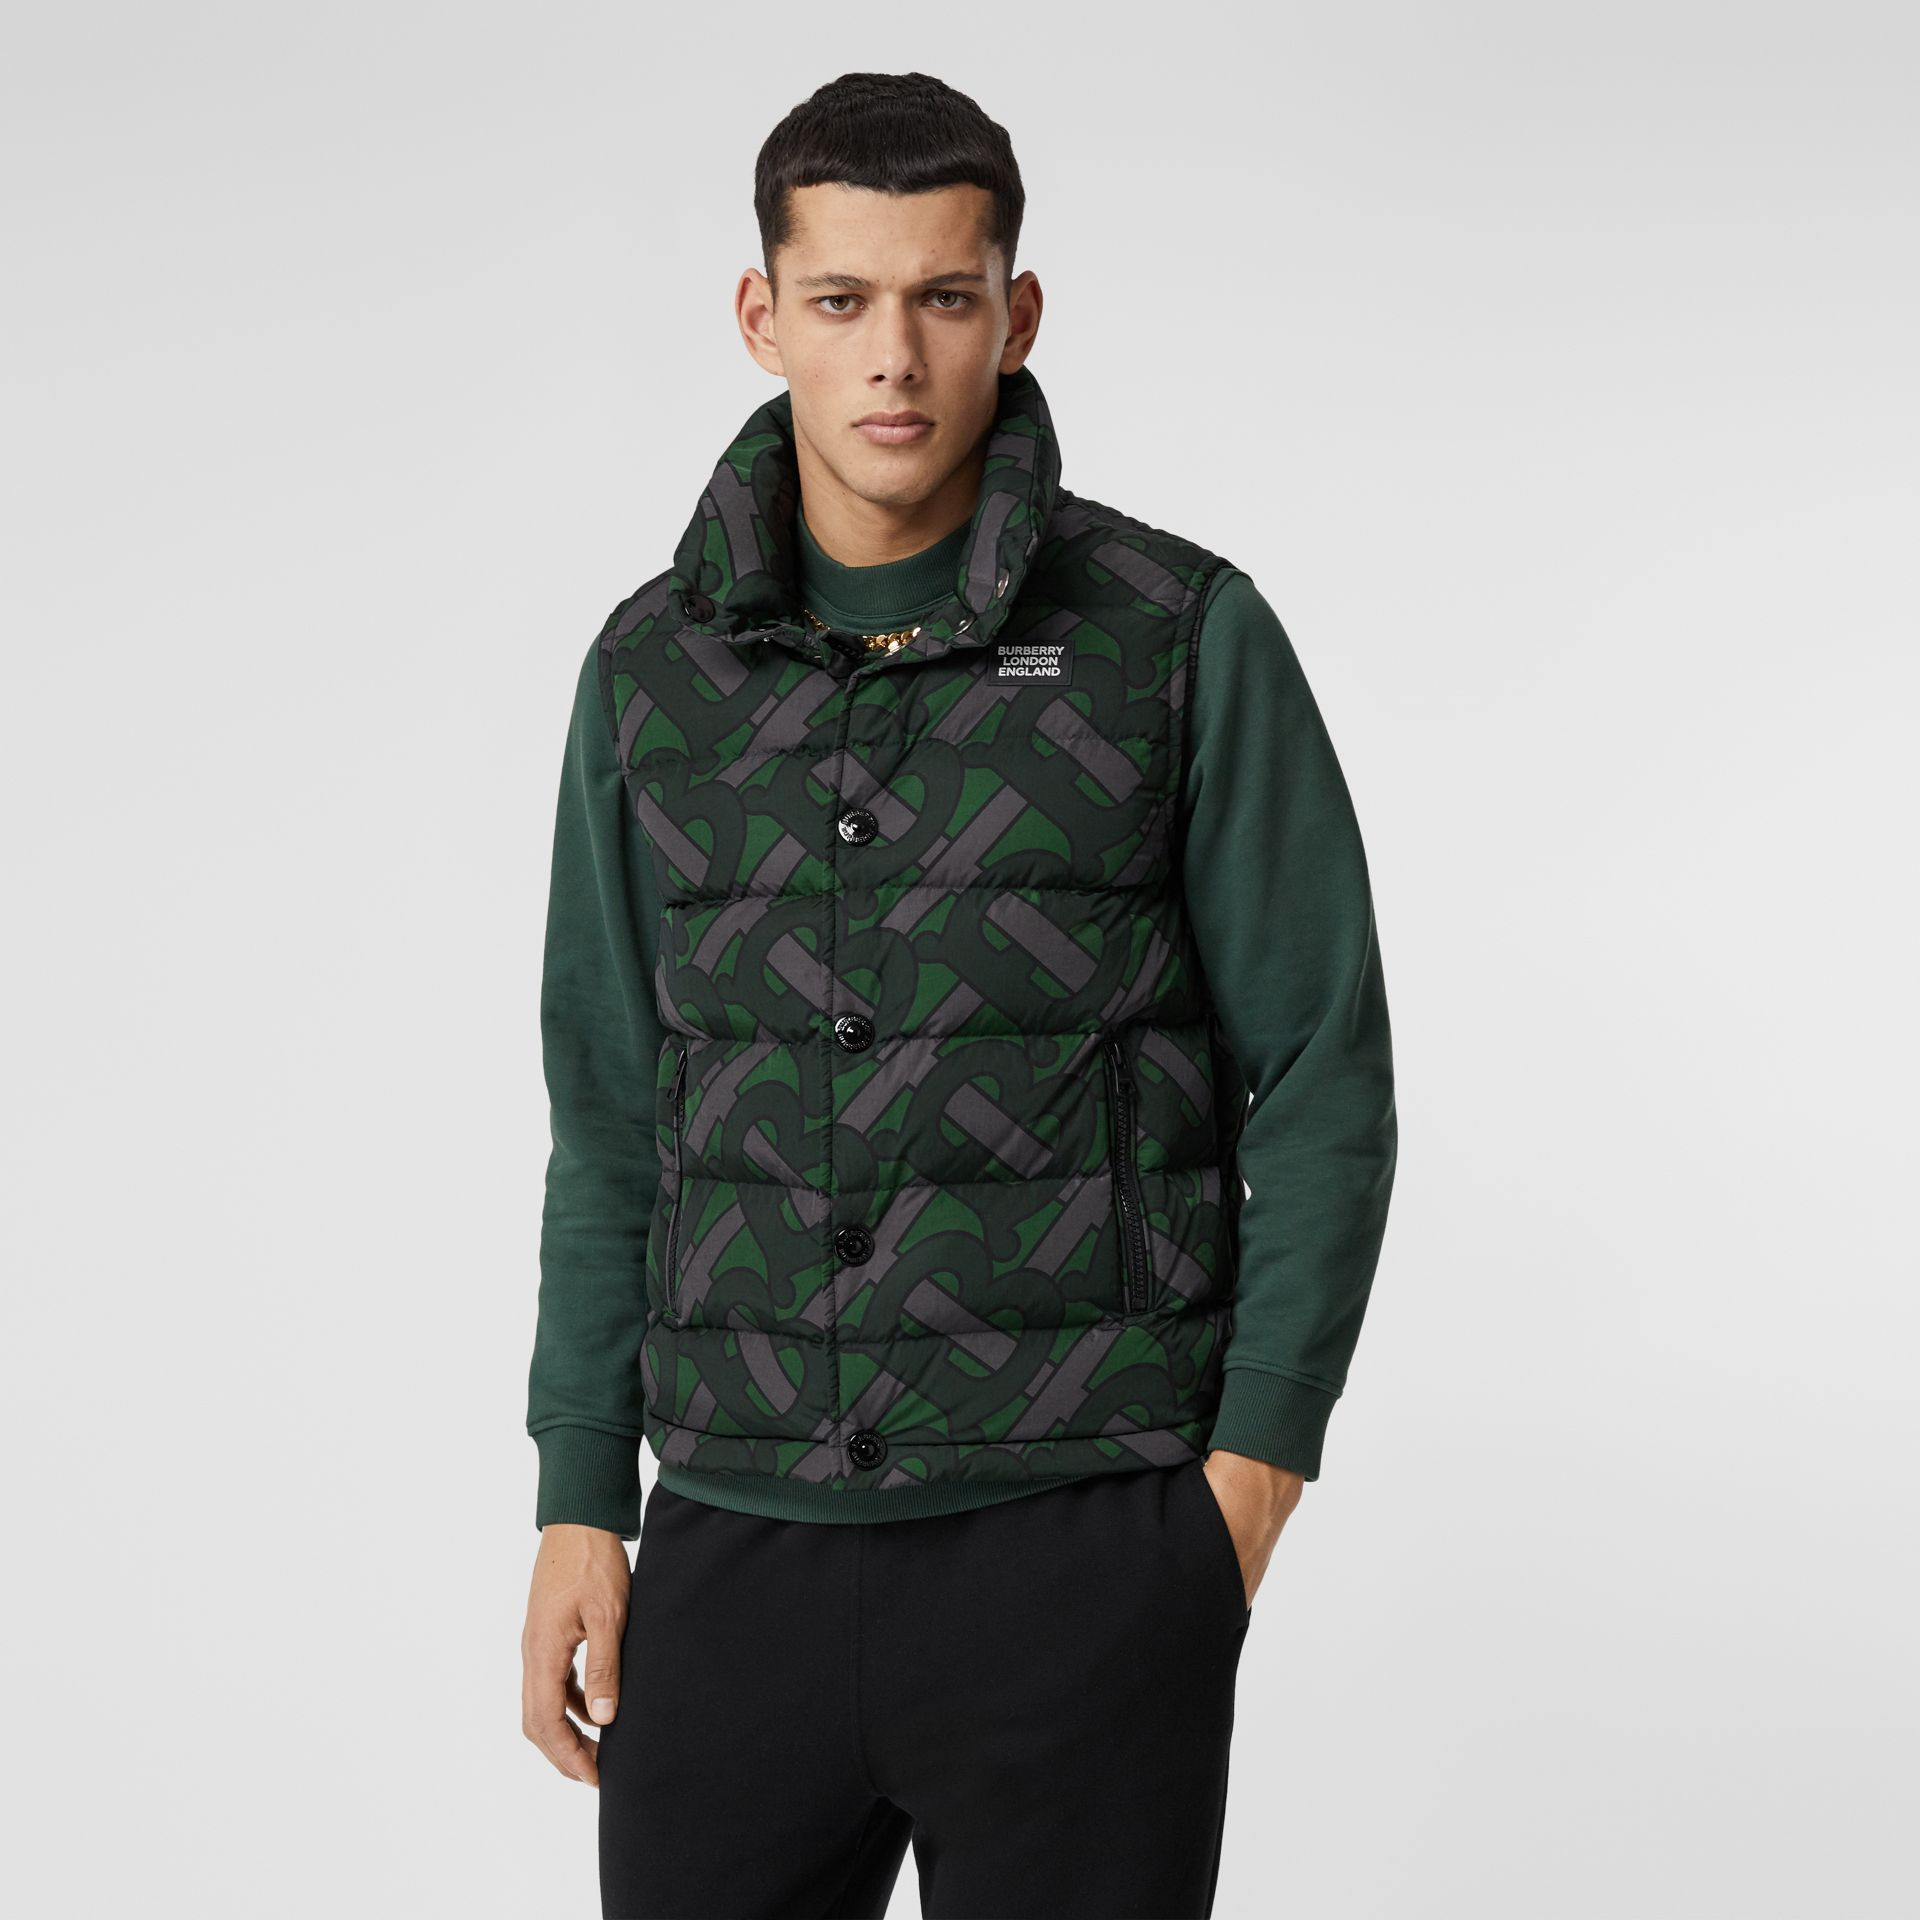 Monogram Print Puffer Gilet in Forest Green | Burberry Canada - gallery image 6